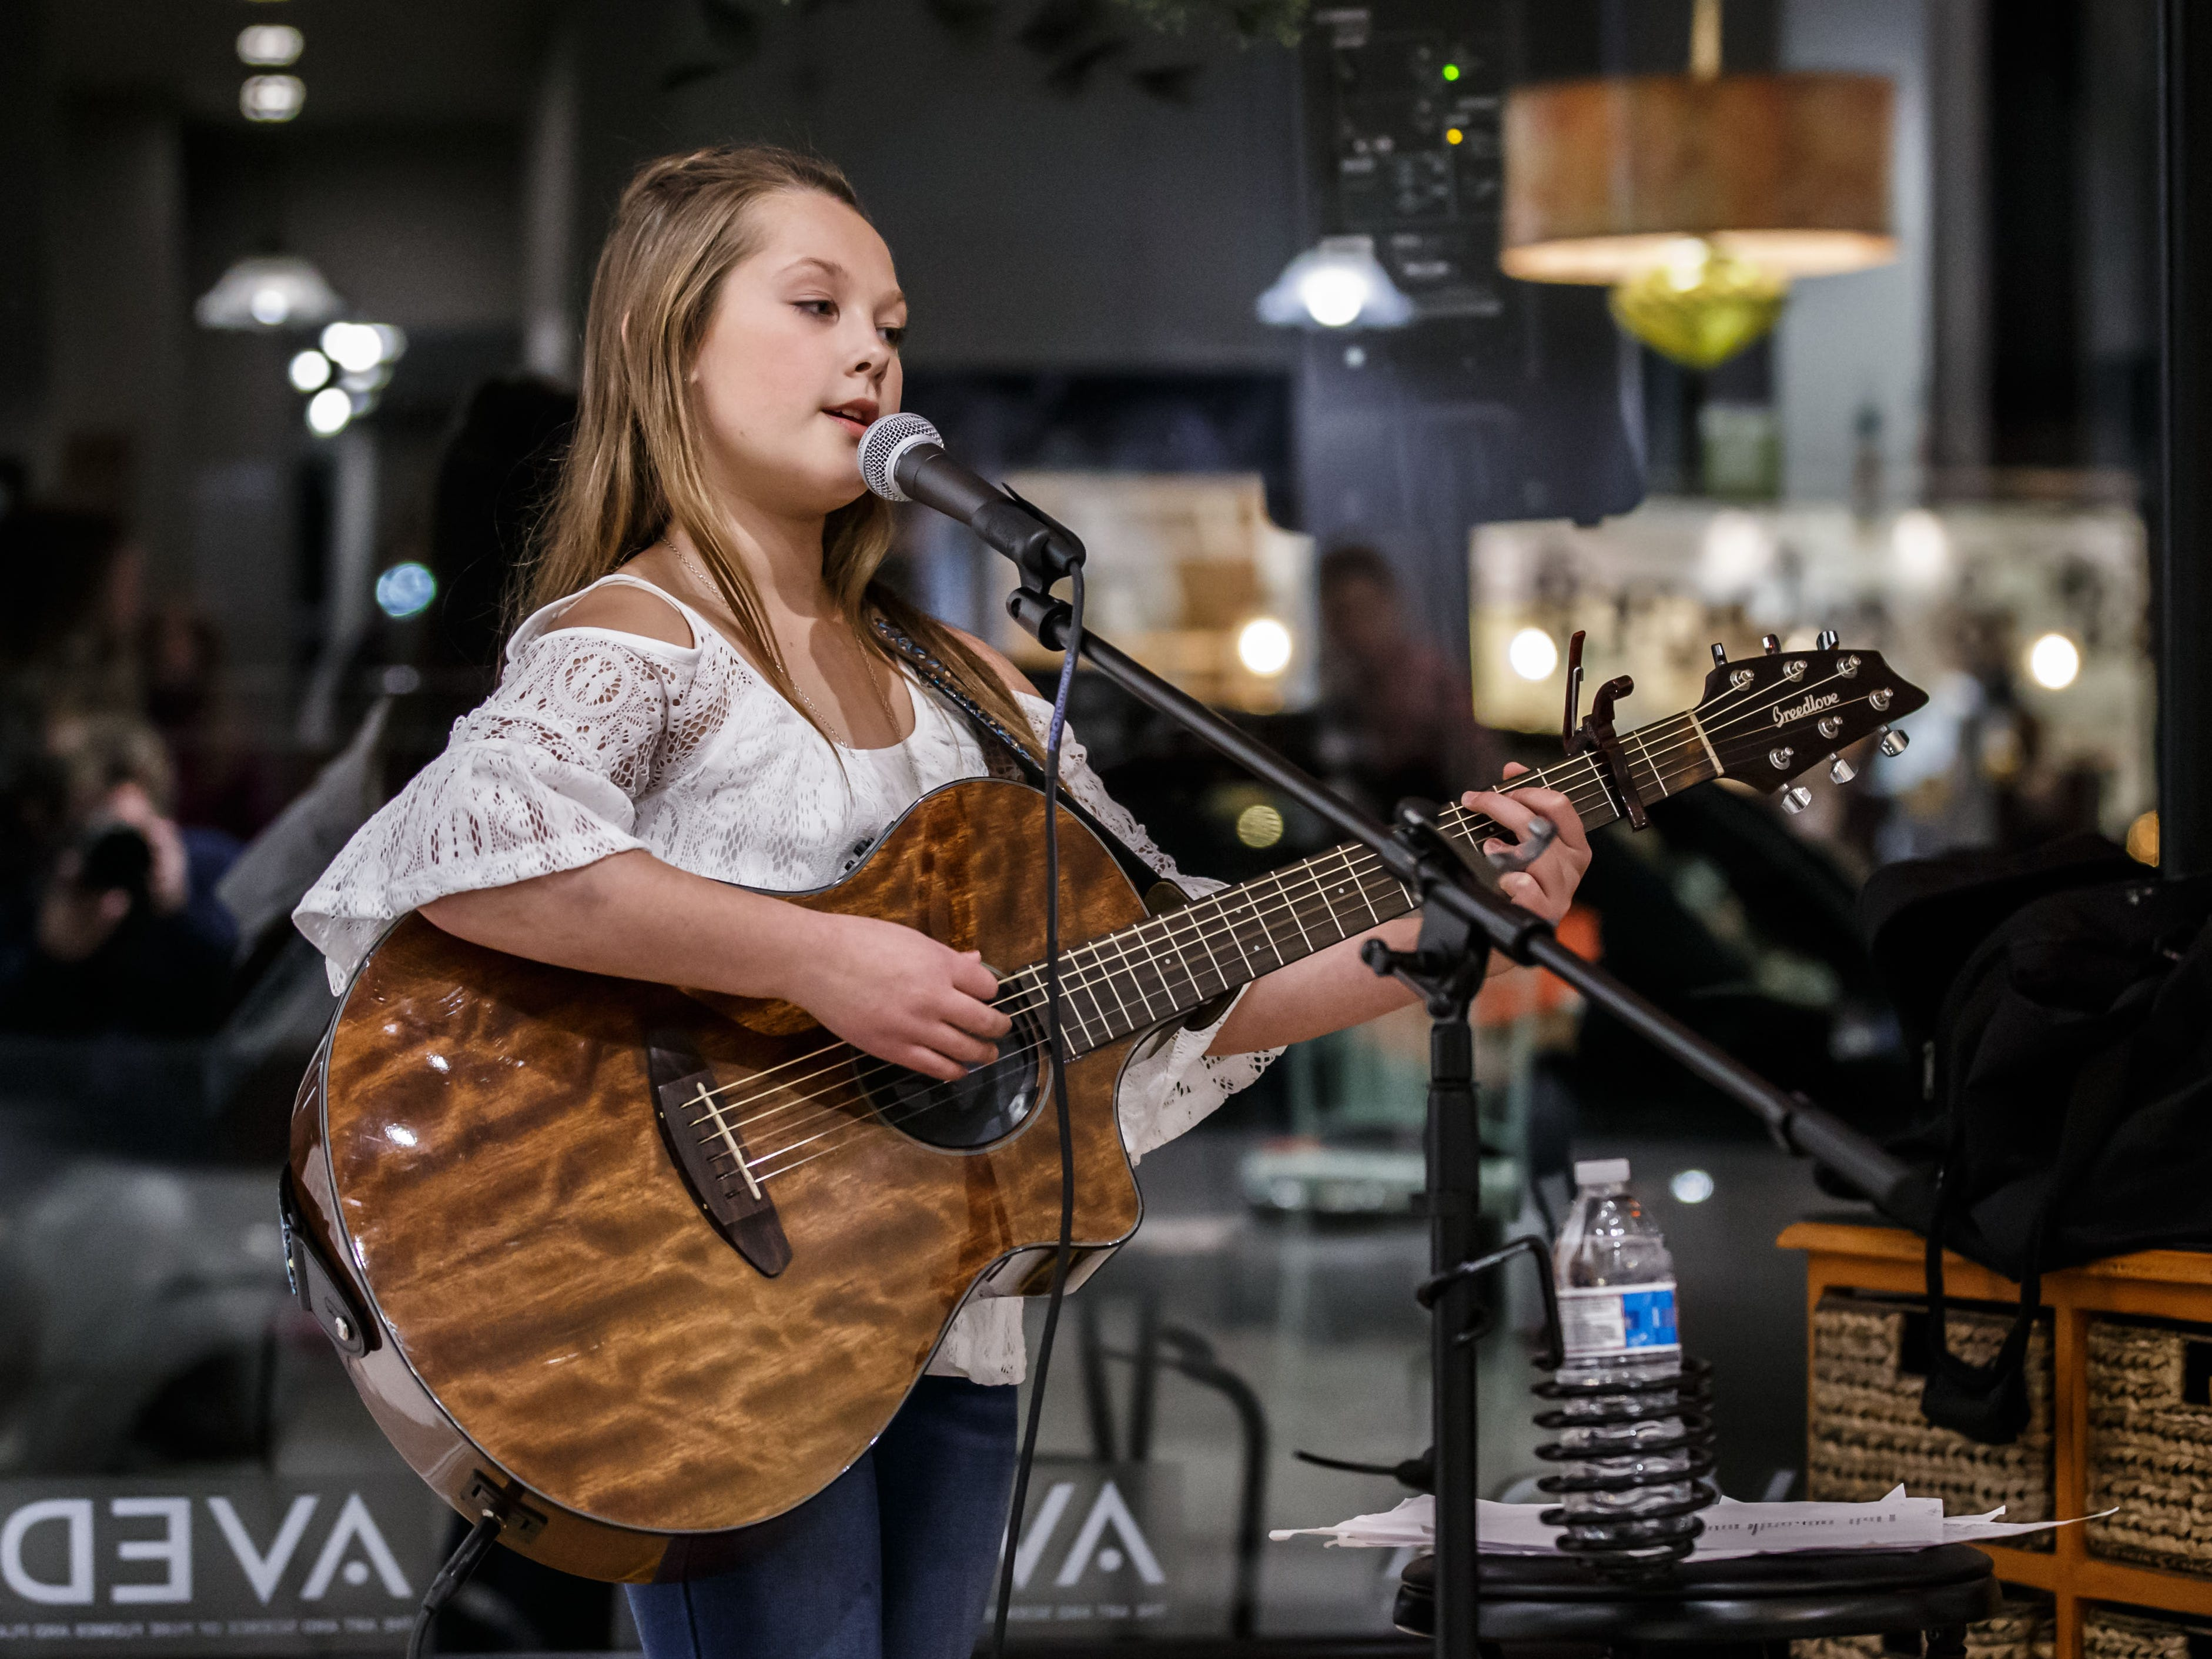 Singer songwriter Sadie Jo Schwefel, 11, of Oconomowoc performs at Ambiance Salon during the annual Fall Gallery Night in Oconomowoc on Friday, Nov. 2, 2018.